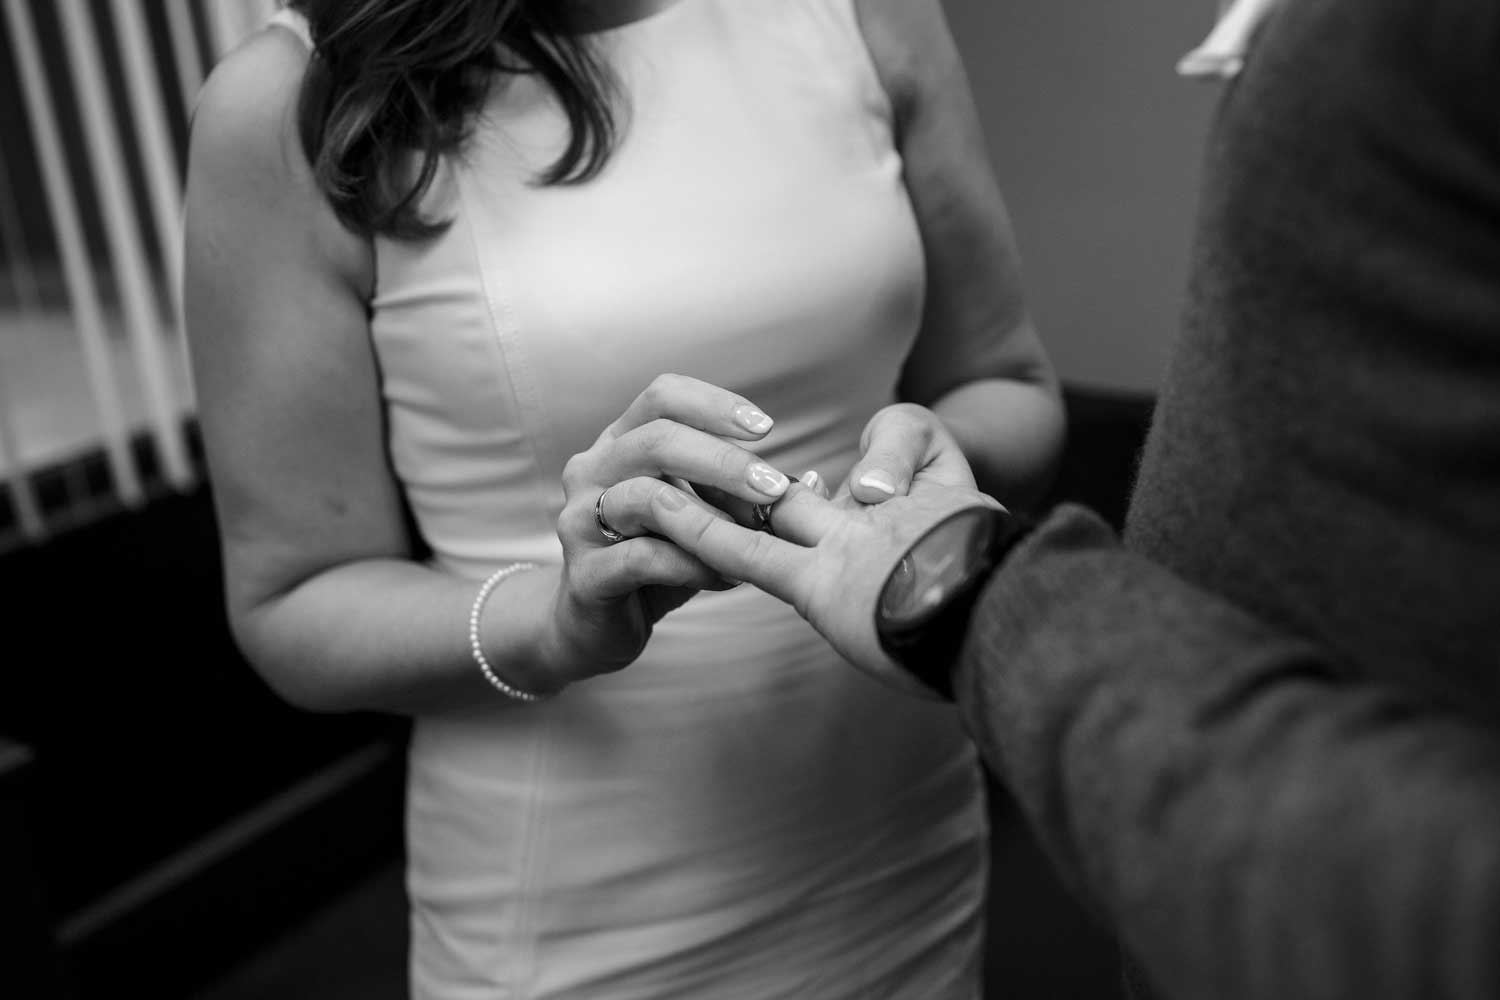 civil ceremony at boston city hall wedding elopement photos